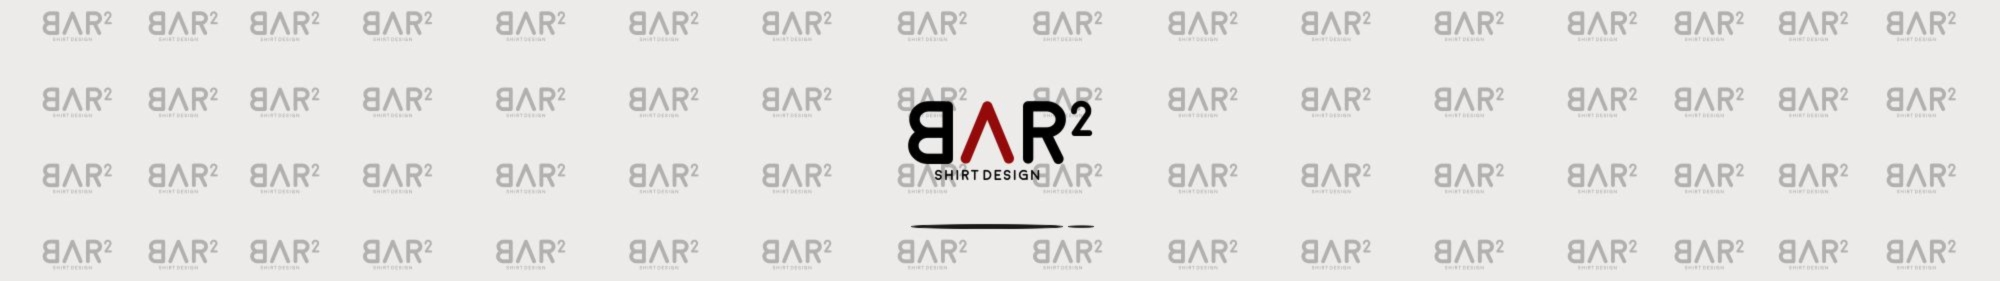 Galleria - Bar2 Shirt Design